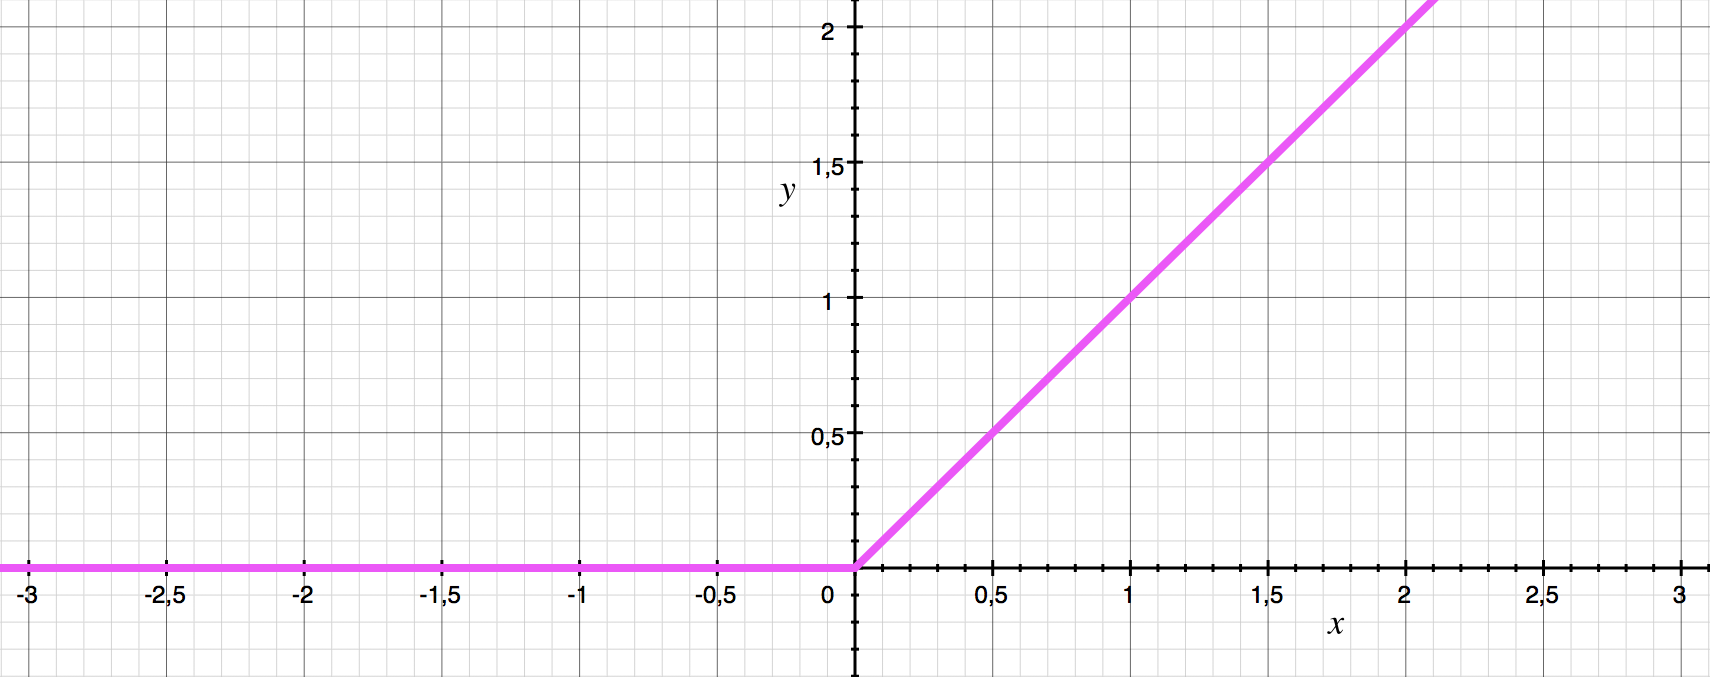 The ReLU activation function